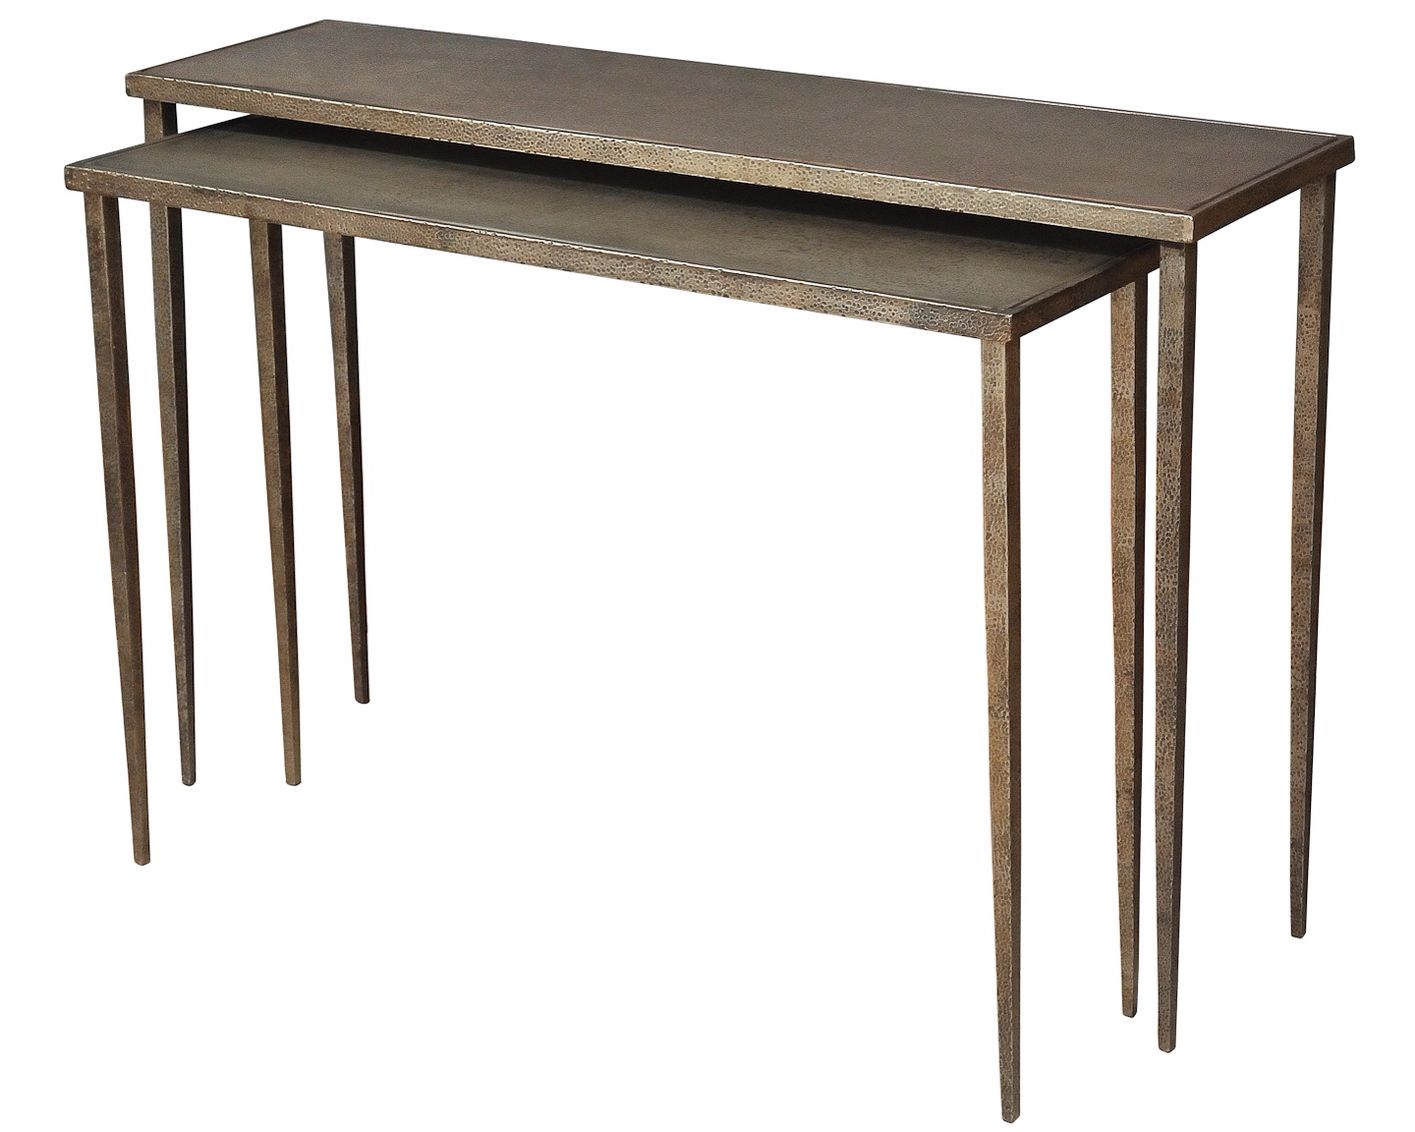 Hammered Sheet Metal Console Tables | My Designs | Pinterest with regard to Parsons Walnut Top & Brass Base 48X16 Console Tables (Image 13 of 30)